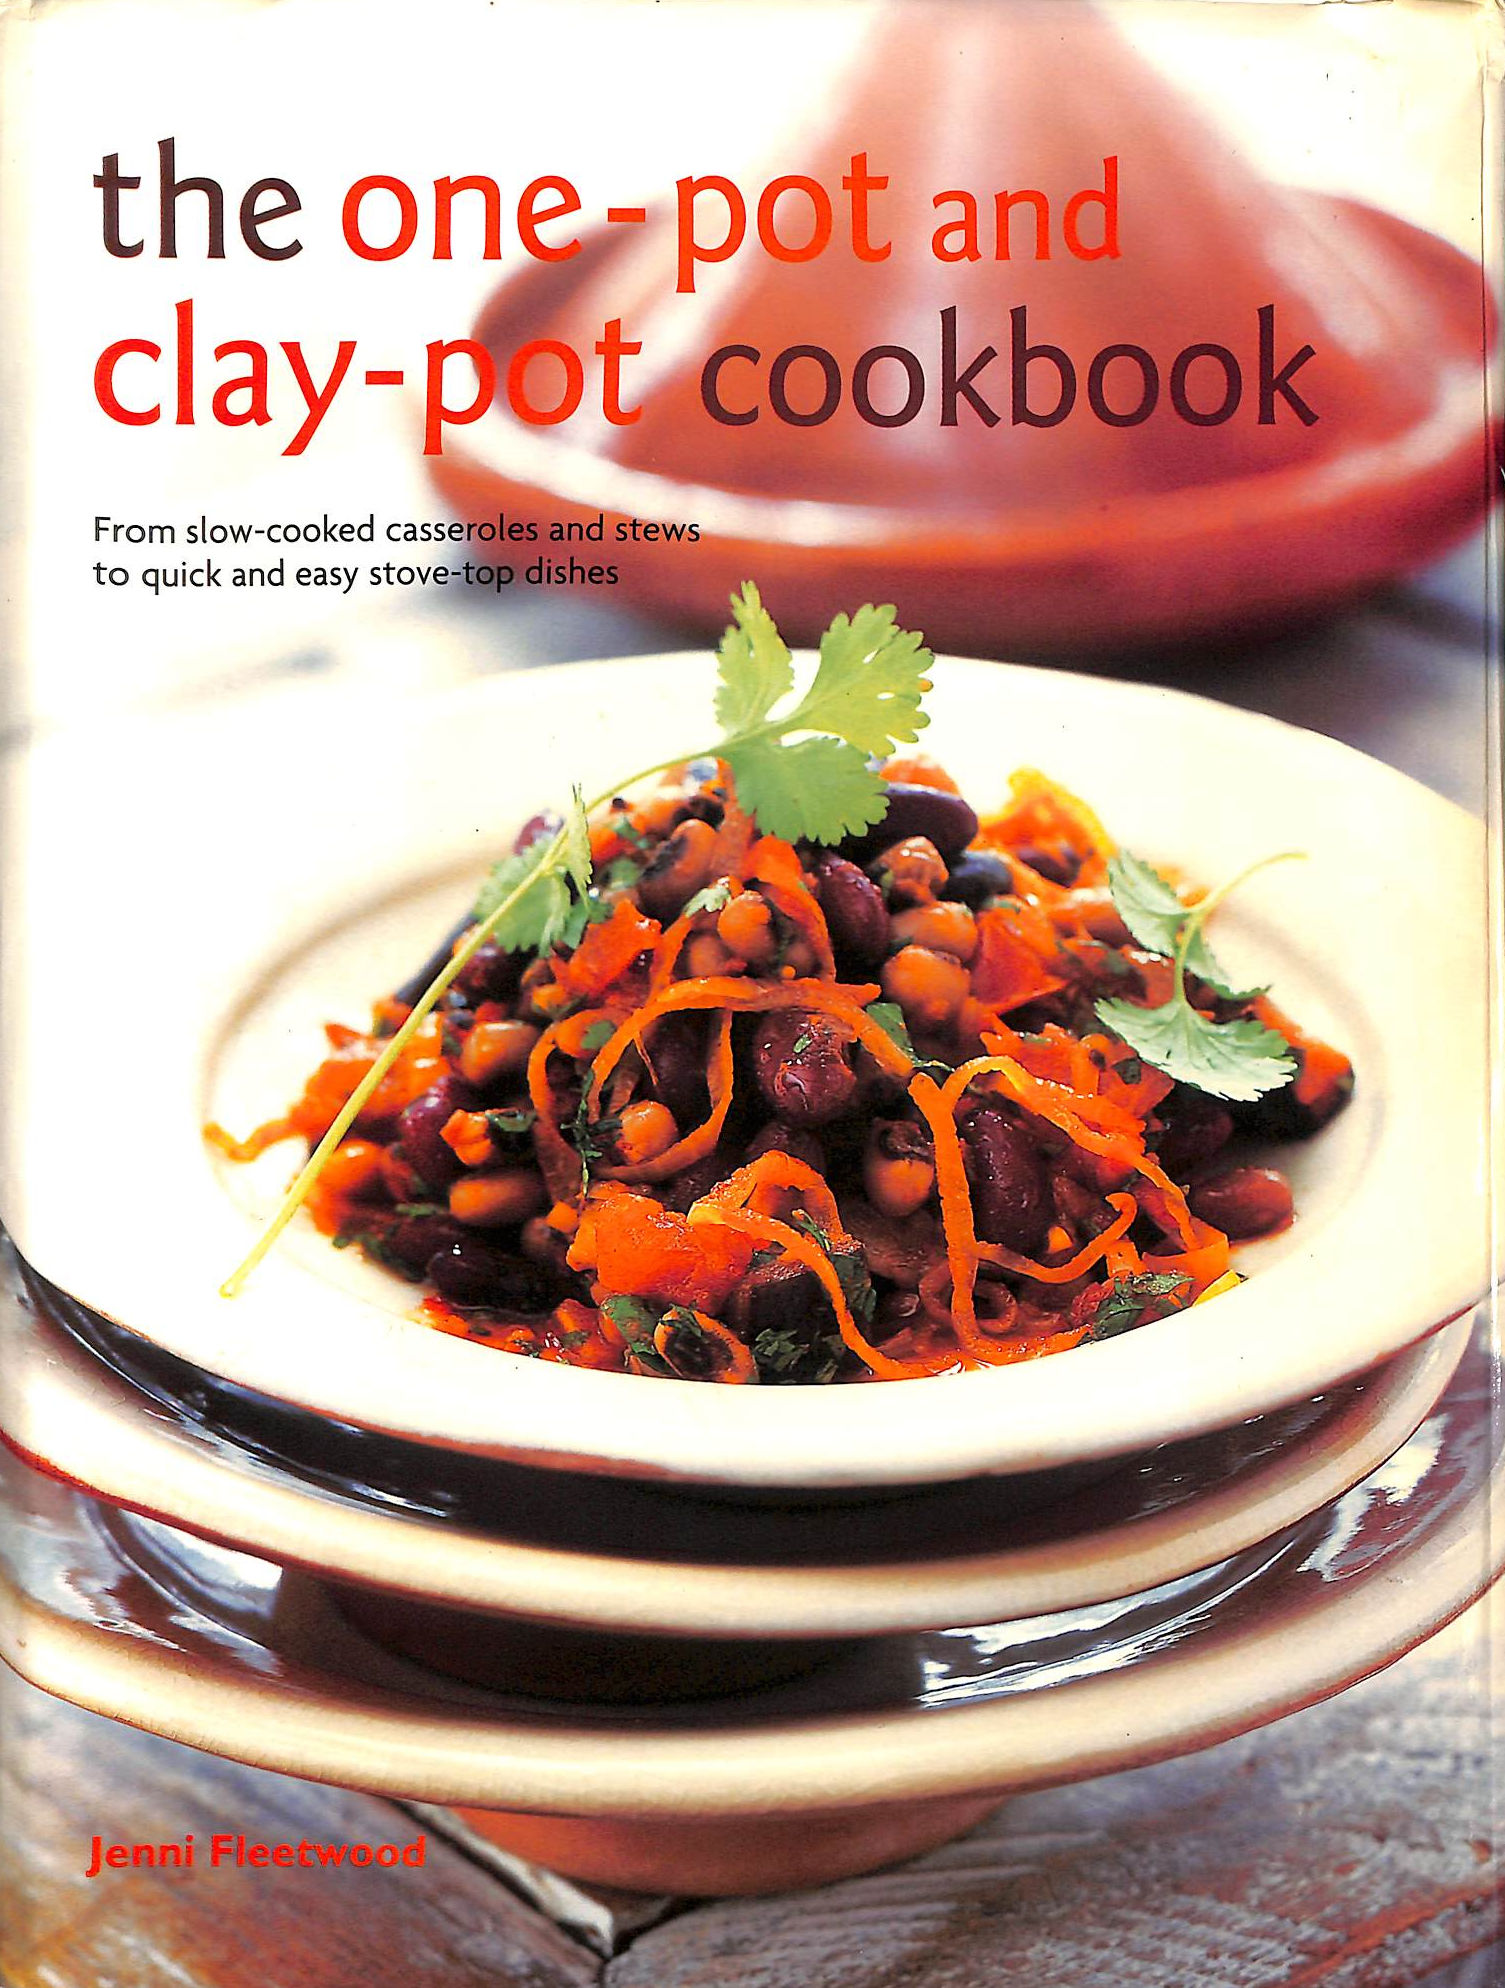 Image for The One-Pot And Clay-Pot Cookbook: From Slow-Cooked Casseroles And Stews To Quick And Easy Stove-Top Dishes